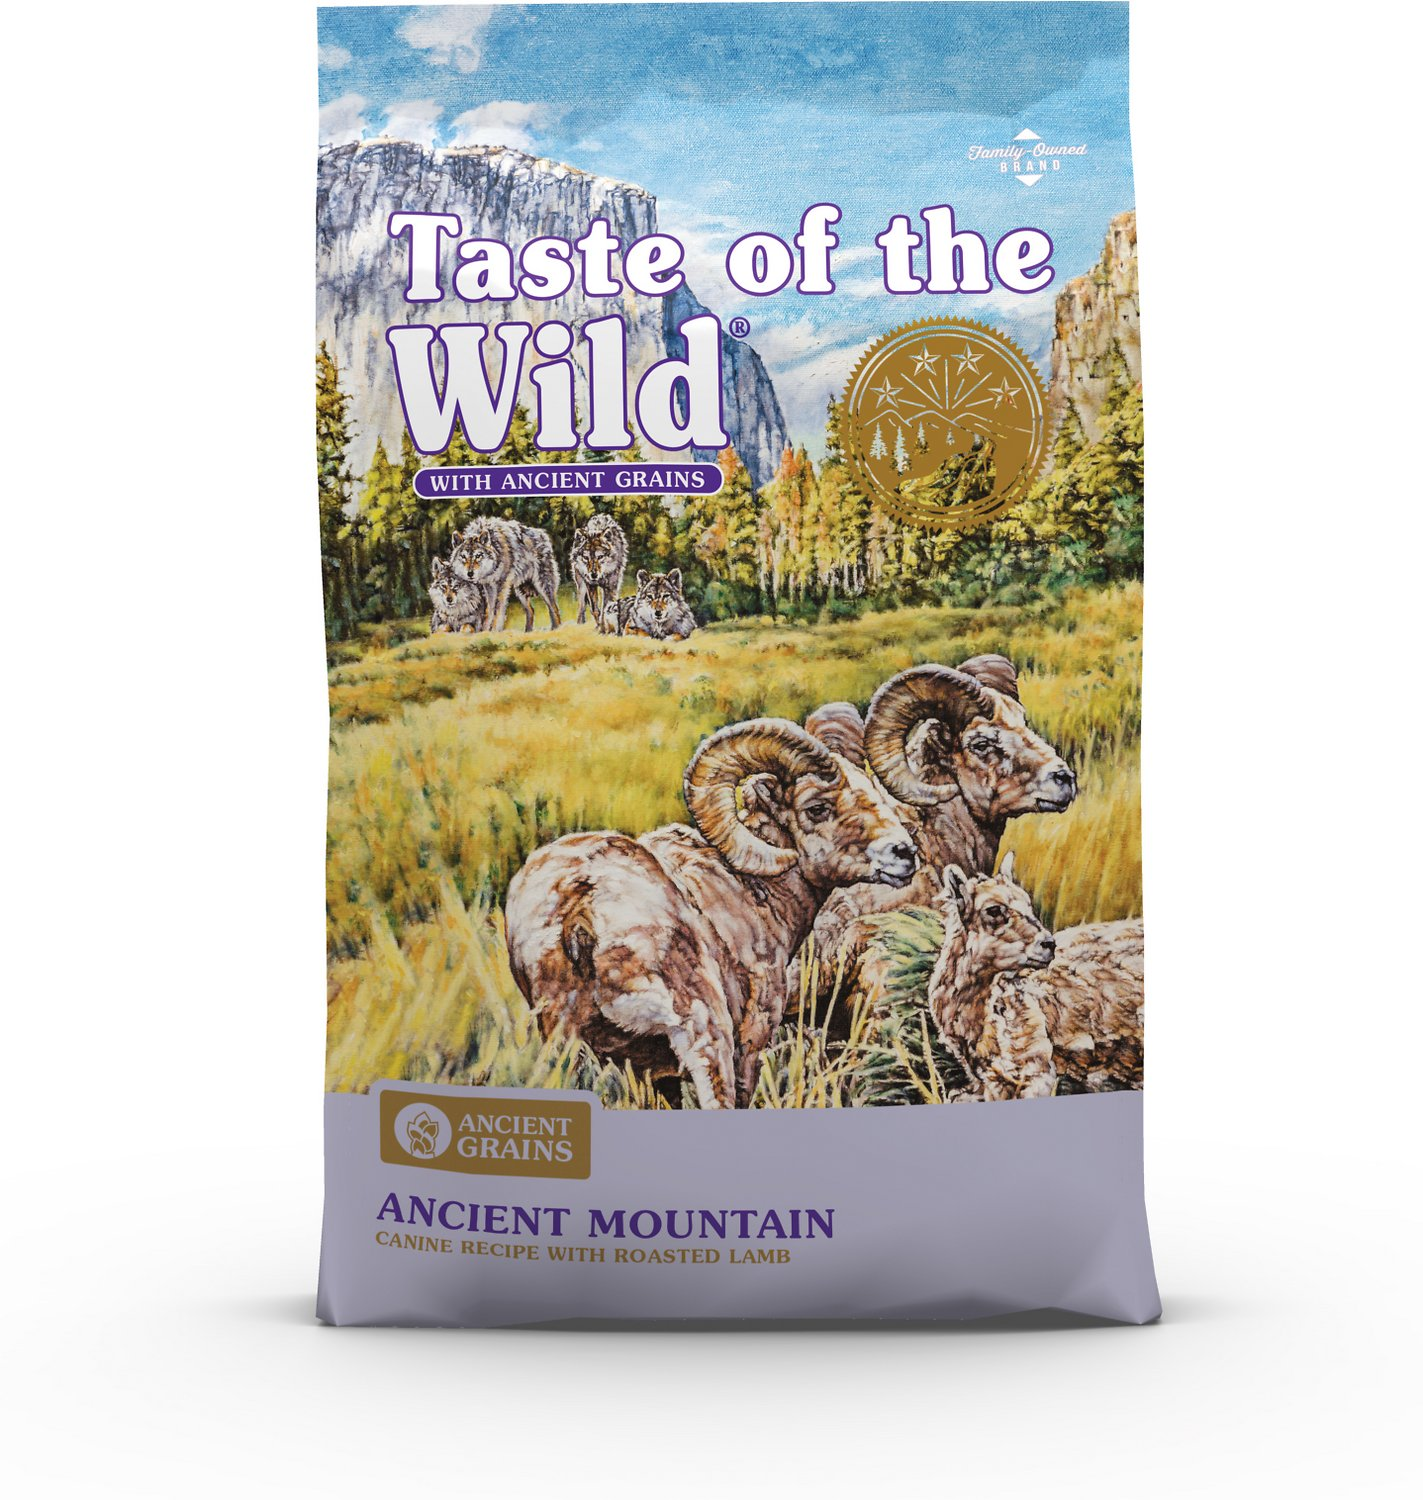 Taste Of The Wild Dog Food Reviews >> Taste Of The Wild Ancient Mountain With Ancient Grains Dry Dog Food 5 Lb Bag